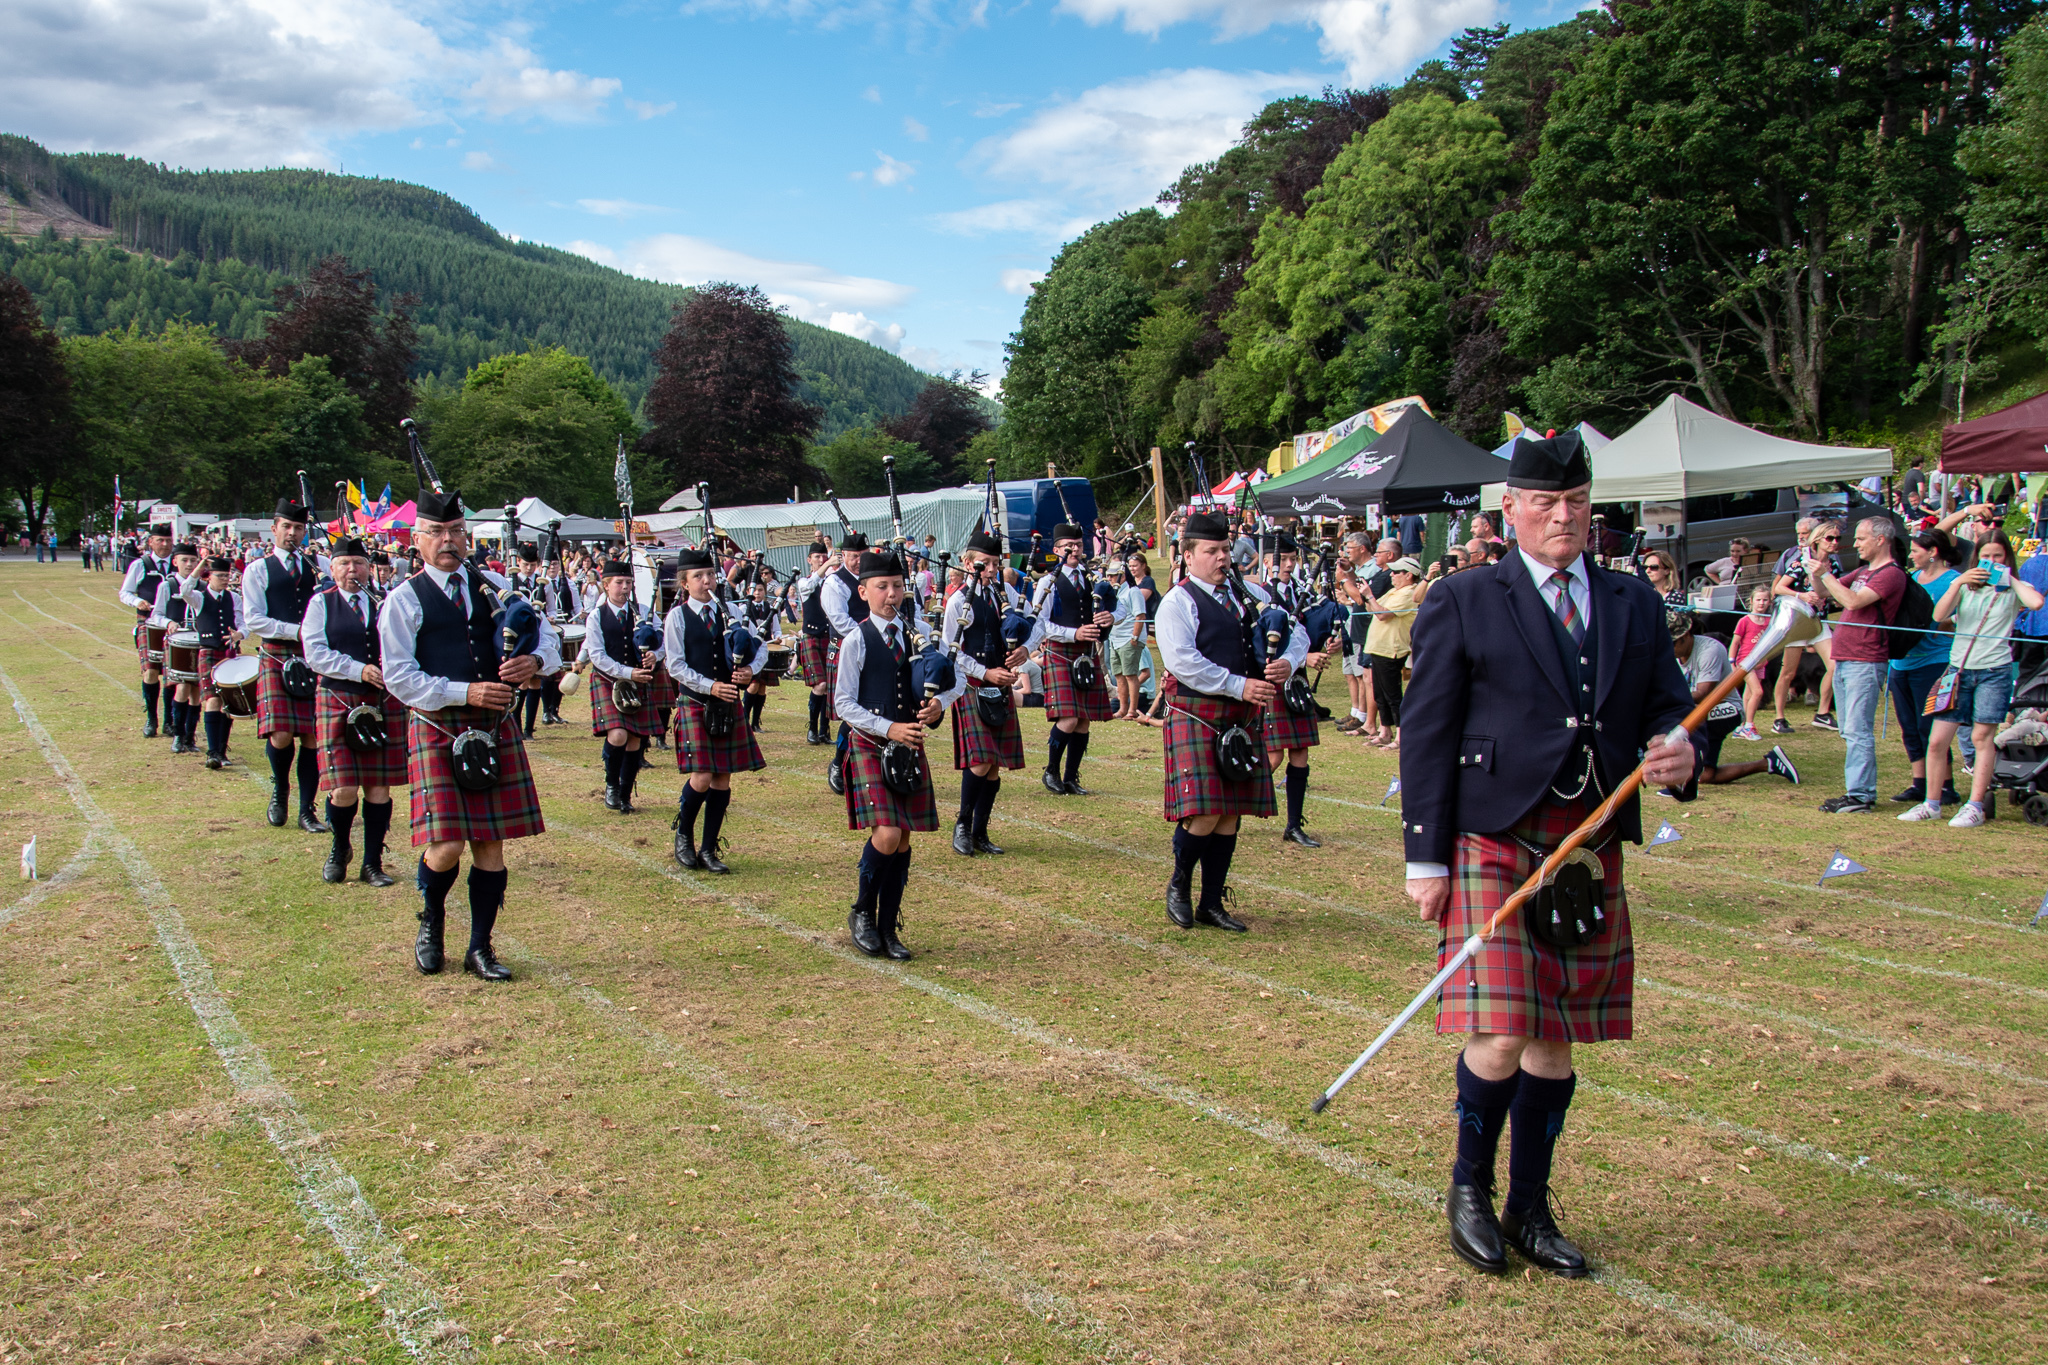 Pipers at the Kenmore Highland Games